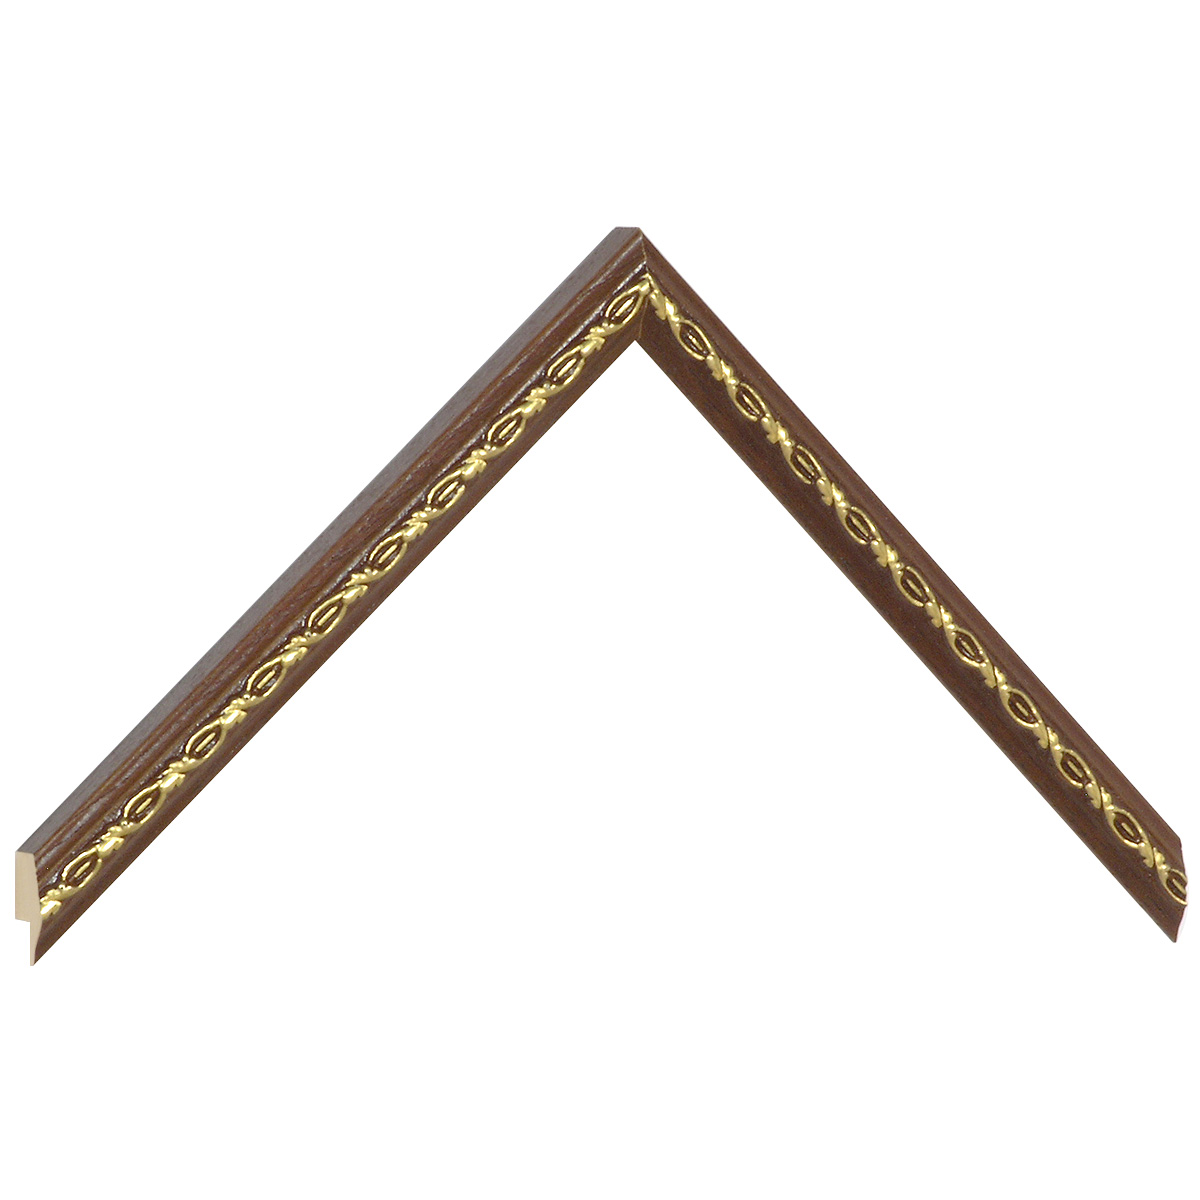 Moulding ayous 14mm - brown, gold decorative relief